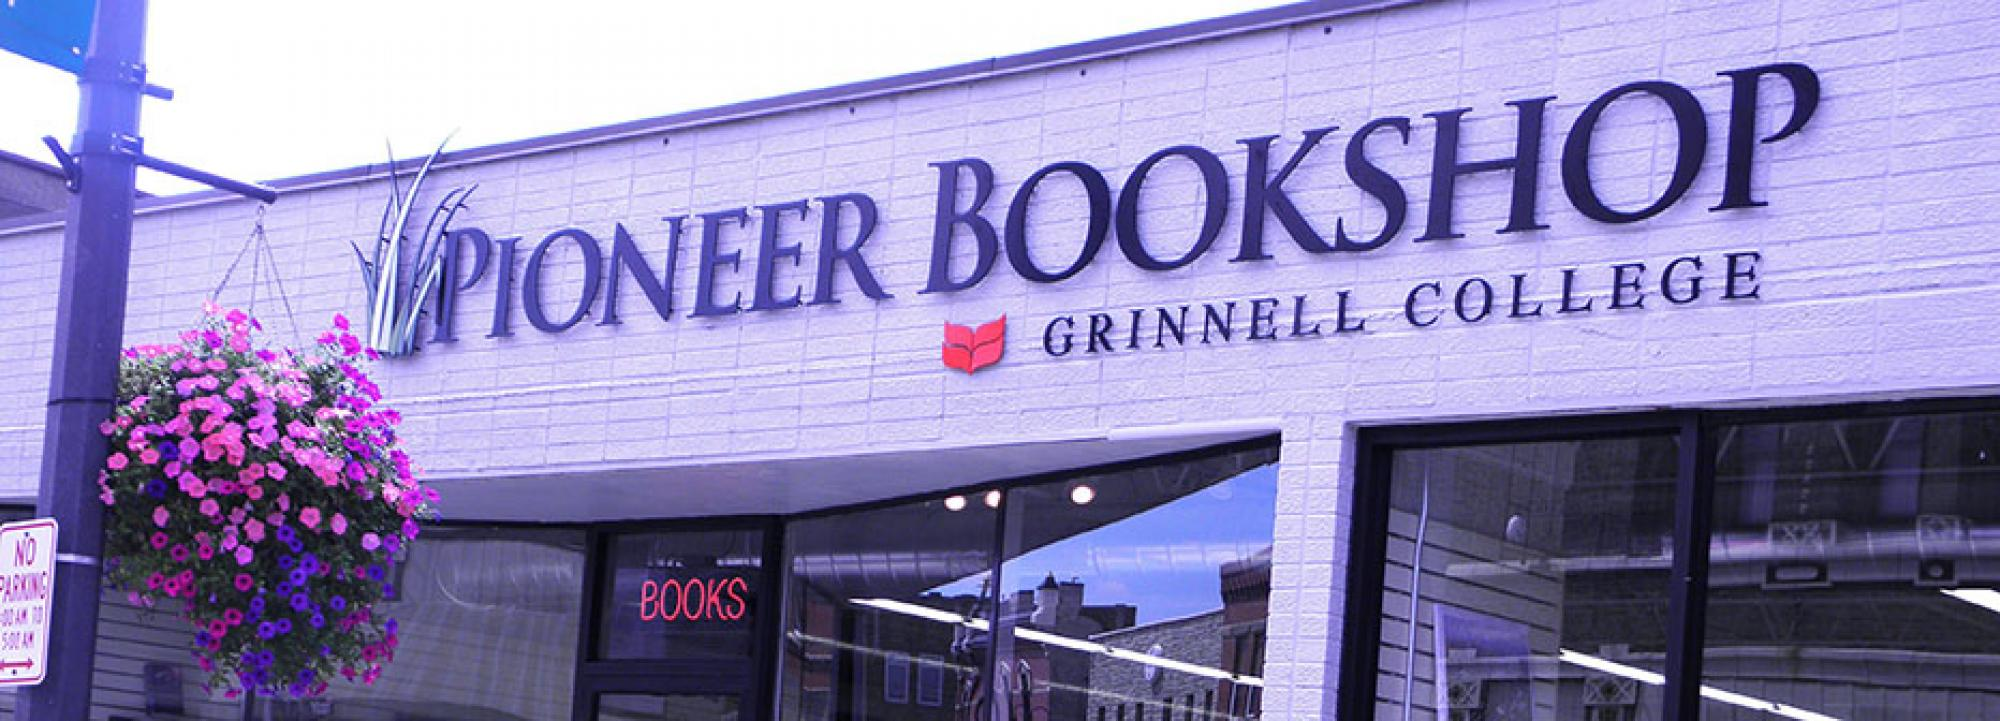 Entrance to Pioneer Bookshop - Grinnell College